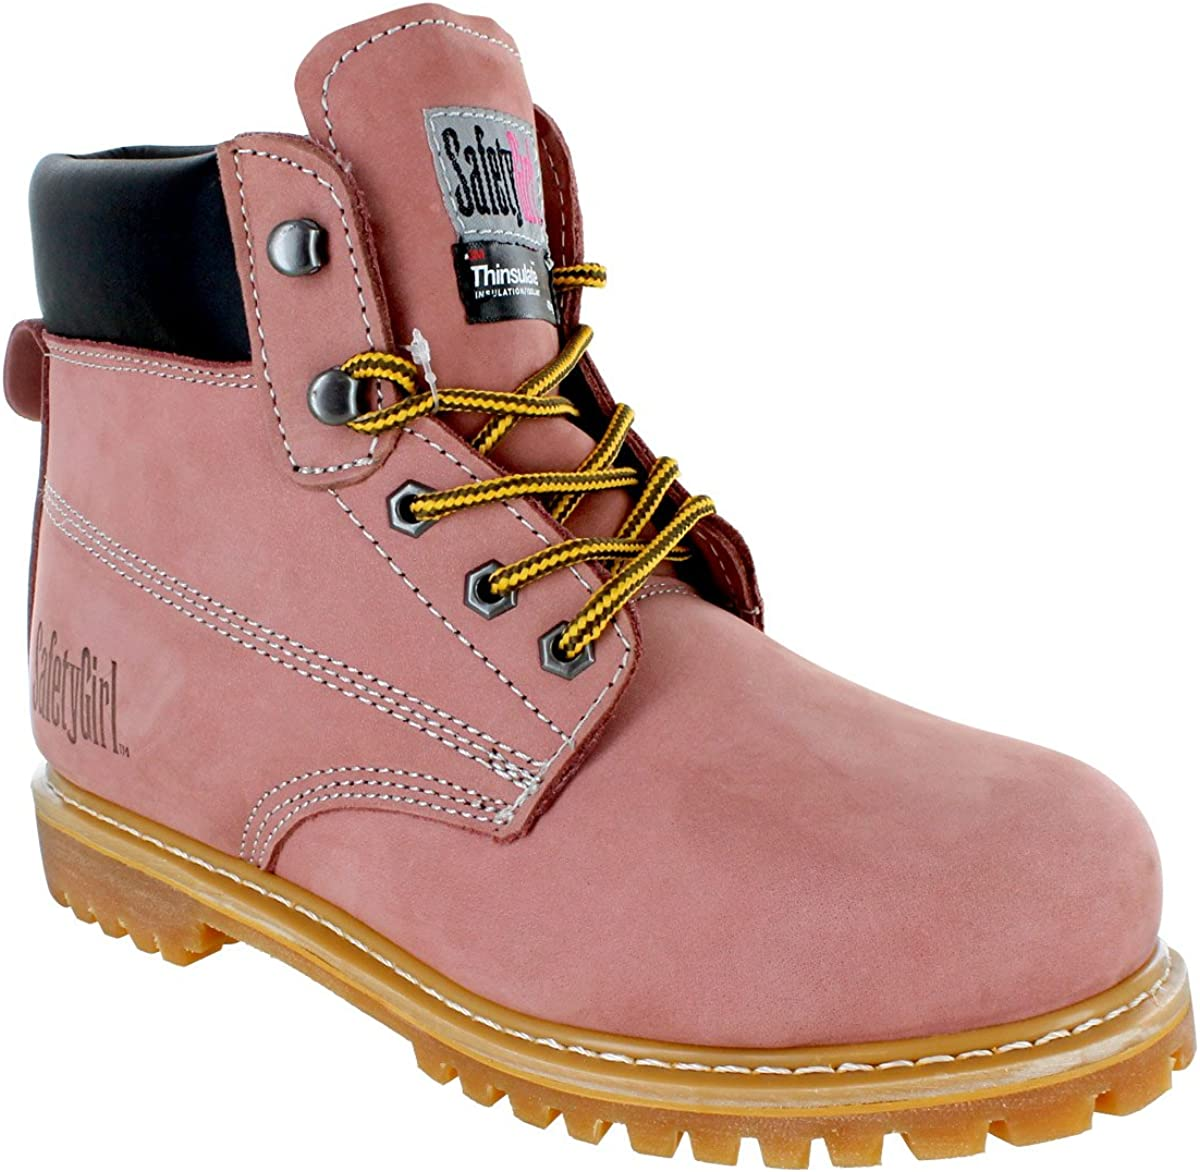 Safety Girl II Insulated Work Boot Steel Toe Light Pink